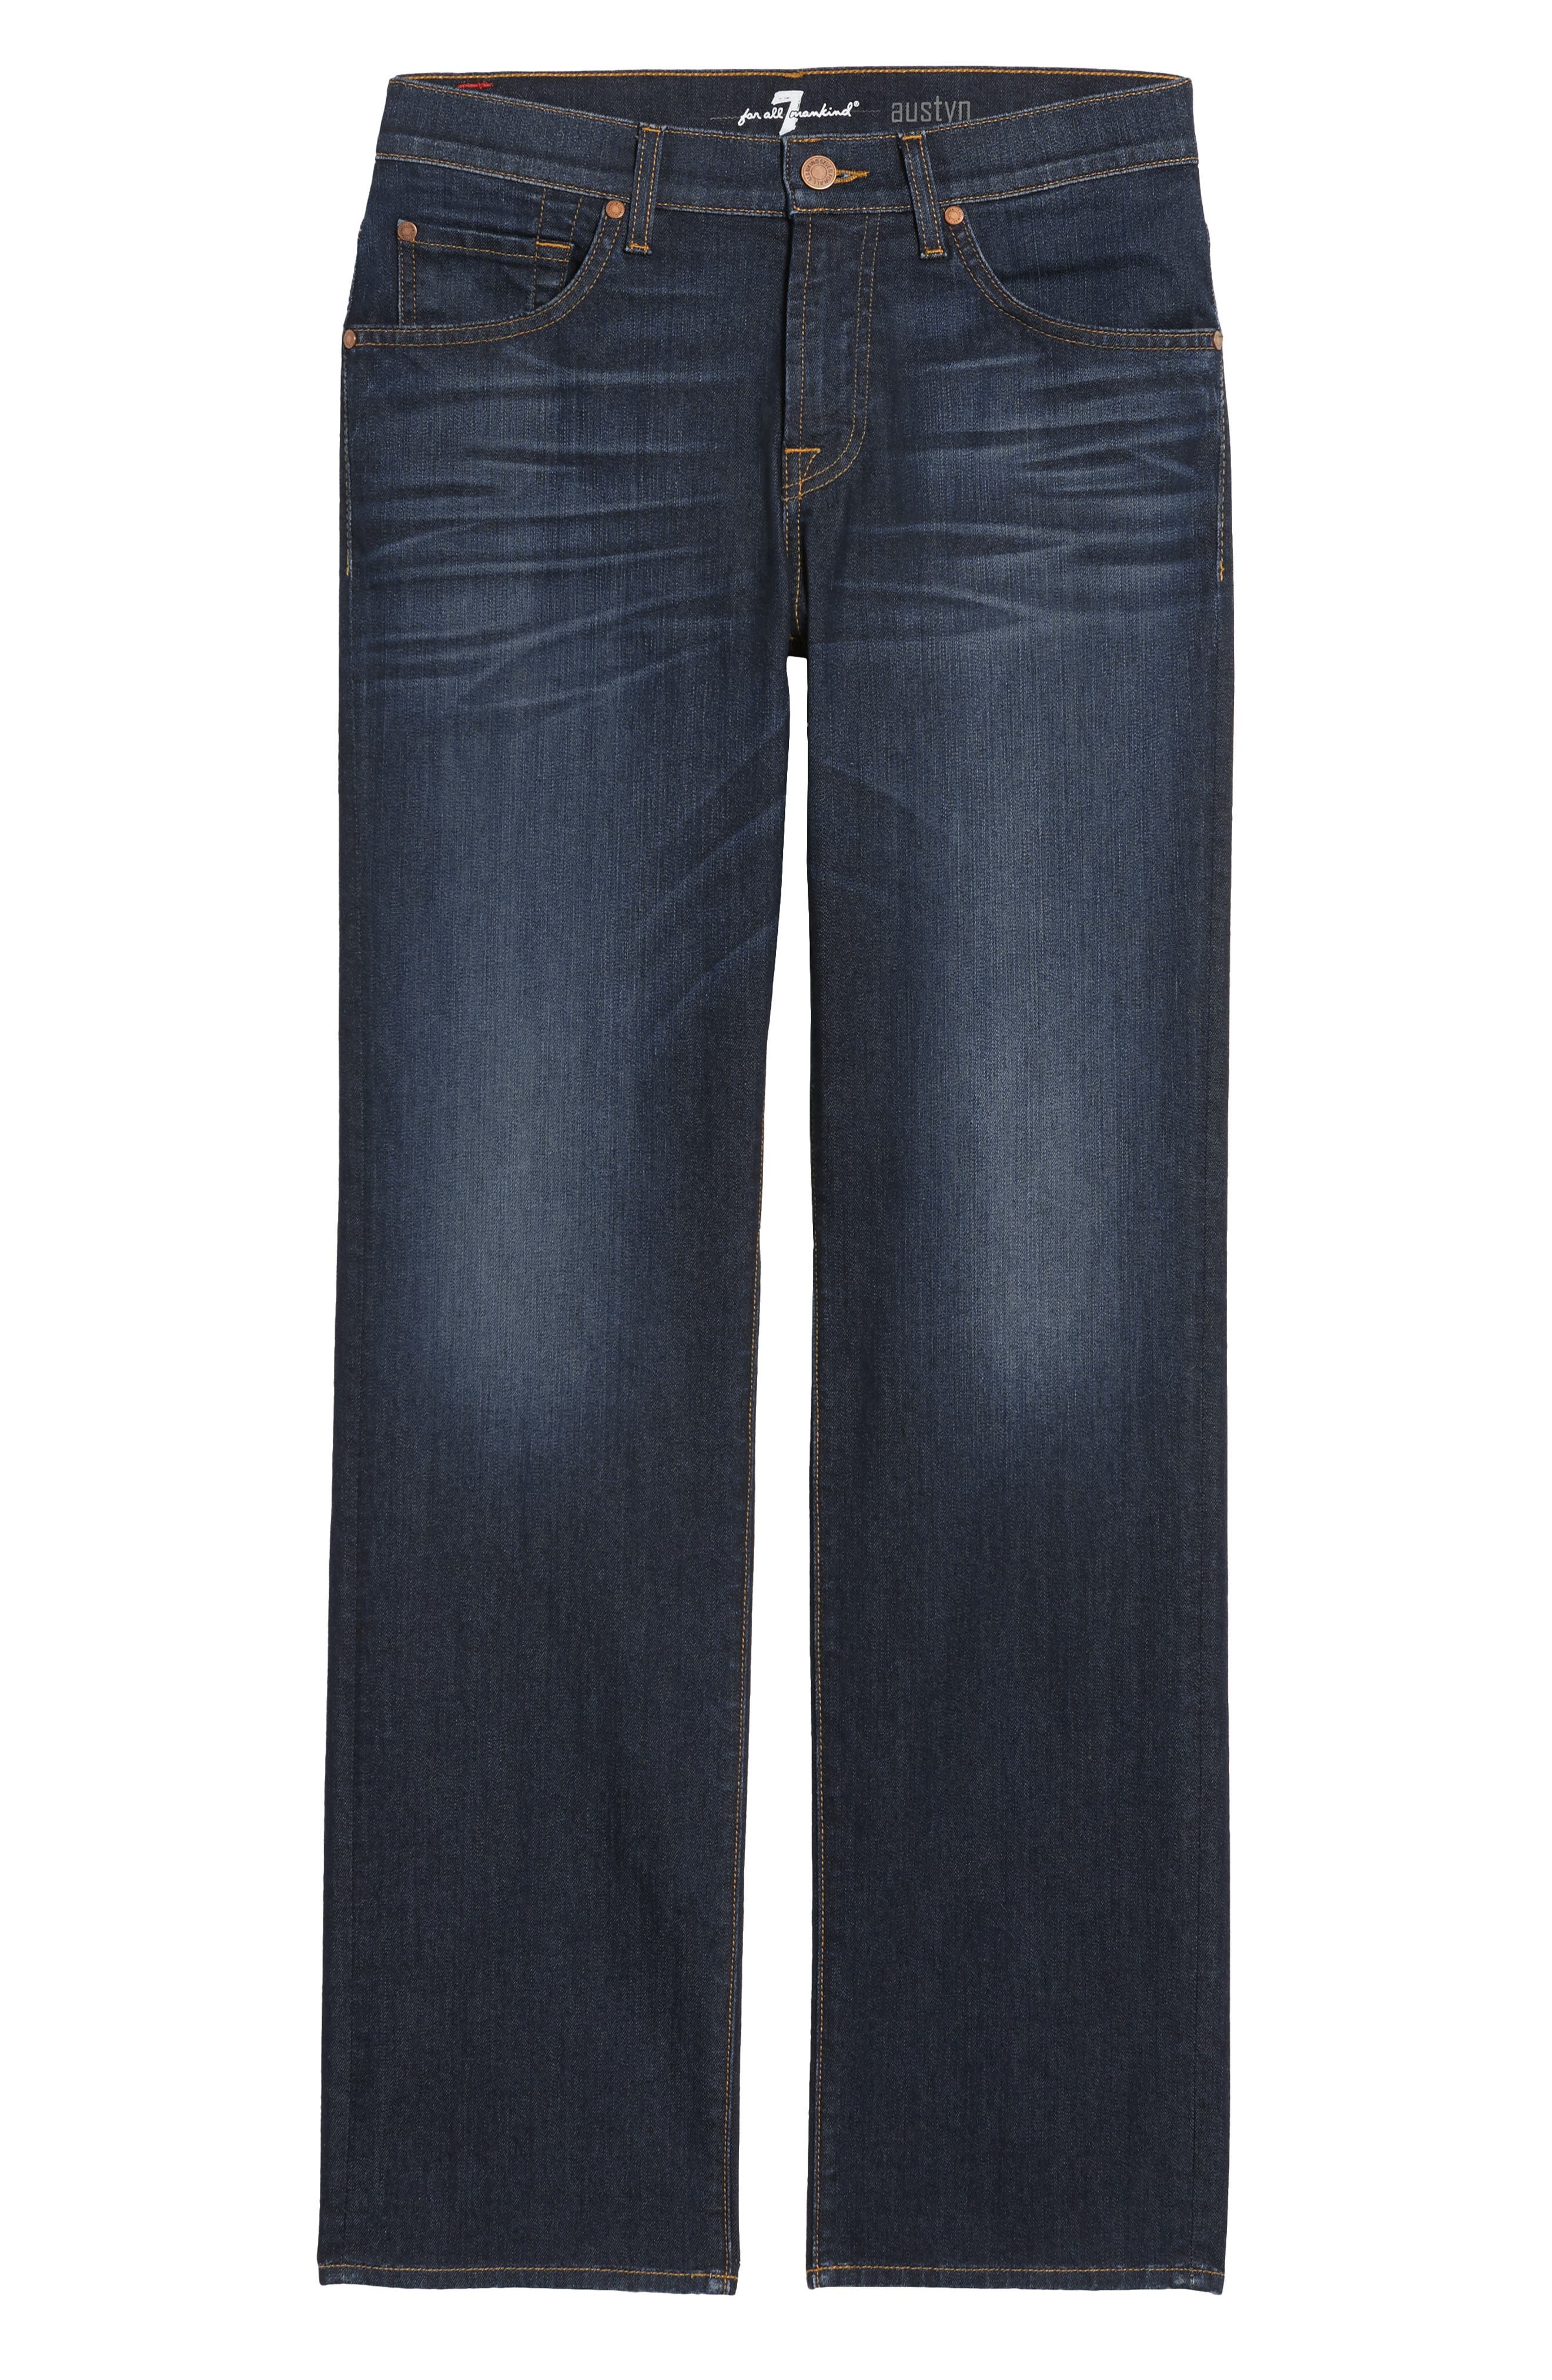 Airweft Austyn Relaxed Straight Leg Jeans,                             Alternate thumbnail 6, color,                             400